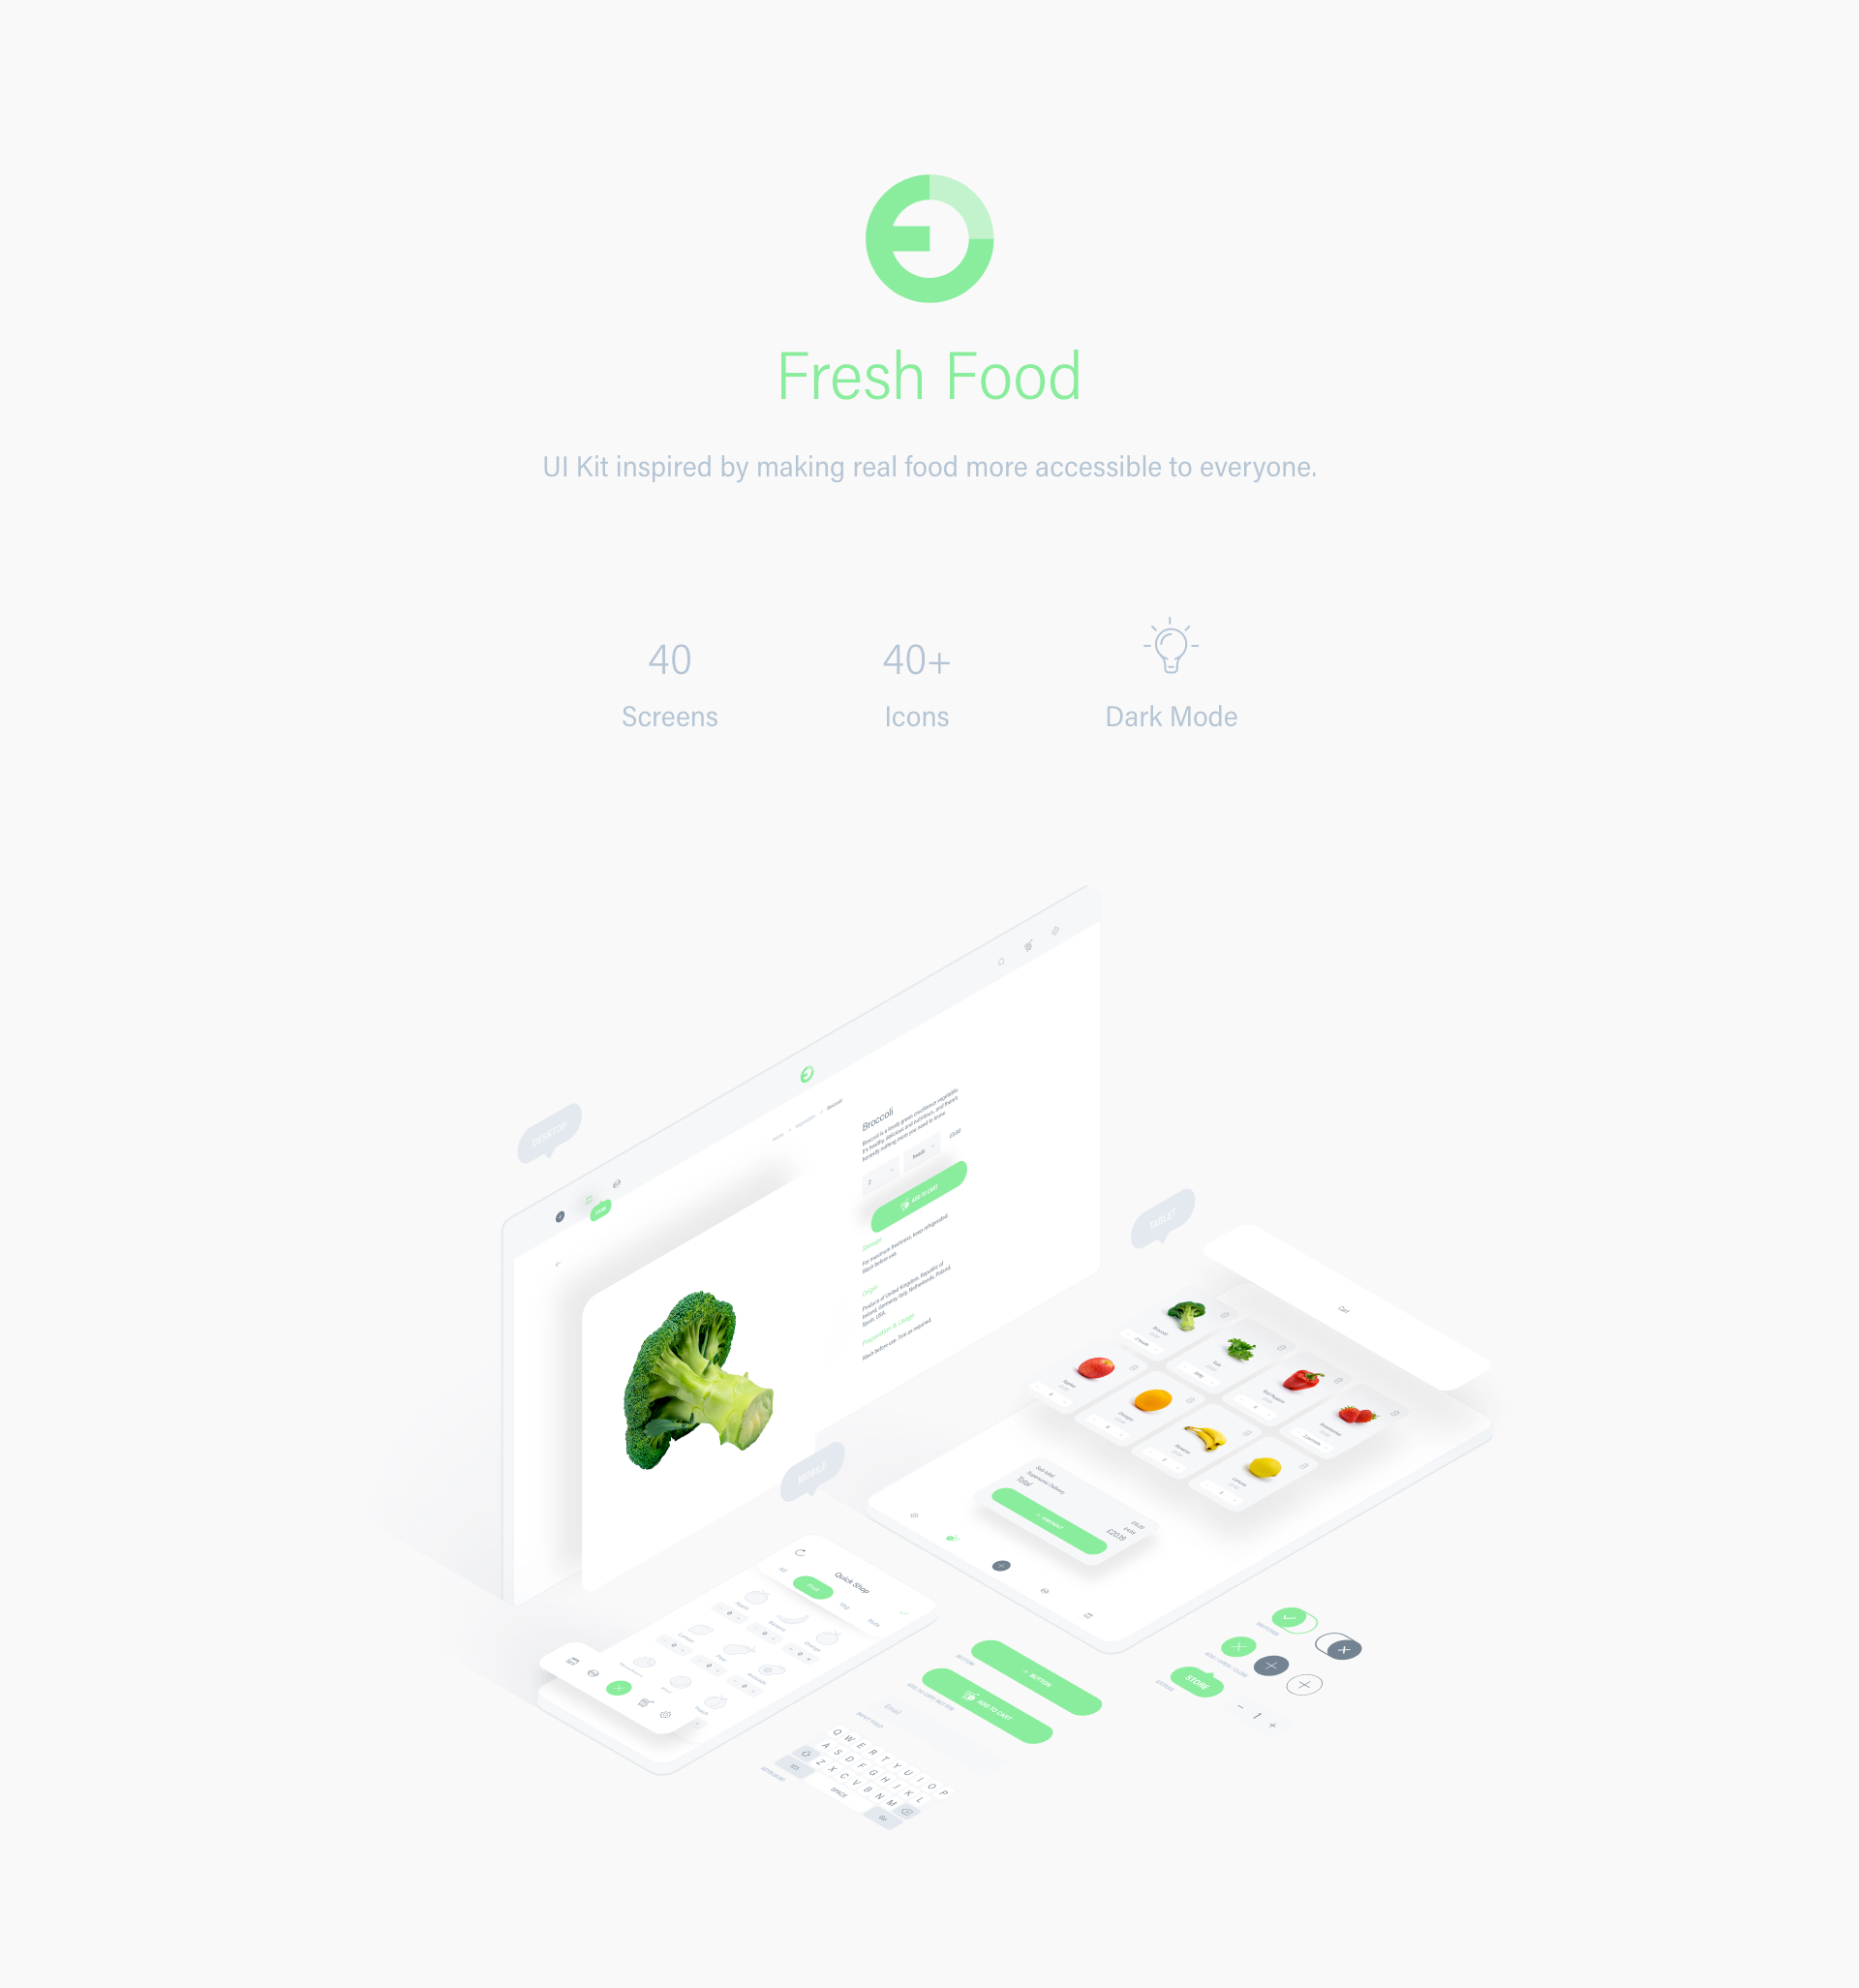 Fresh Food UI Kit for Adobe XD - Fresh Food is an App UI Kit created with Adobe XD that aims to make identifying and ordering healthy foods effortless. The UI kit includes: a suite of assets and icons, mobile and desktop formatted screens, a dark mode version, and plenty of fruits and vegetables!